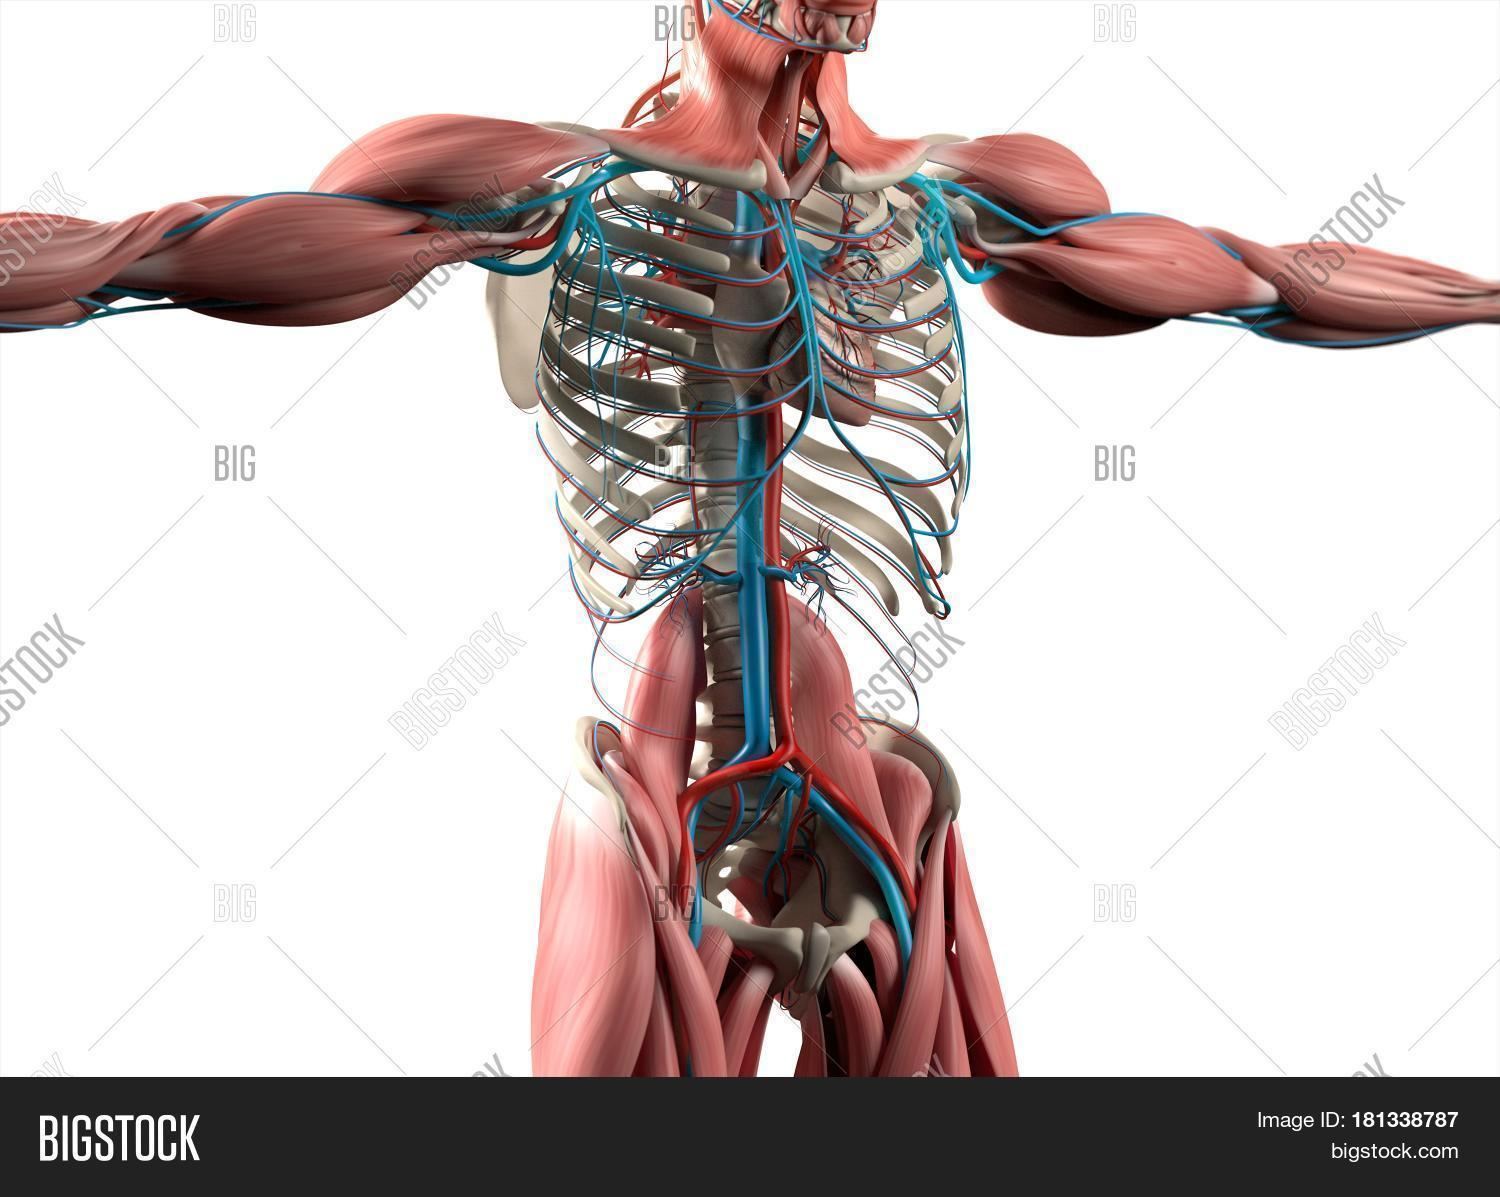 Heart Vascular System Image Photo Free Trial Bigstock